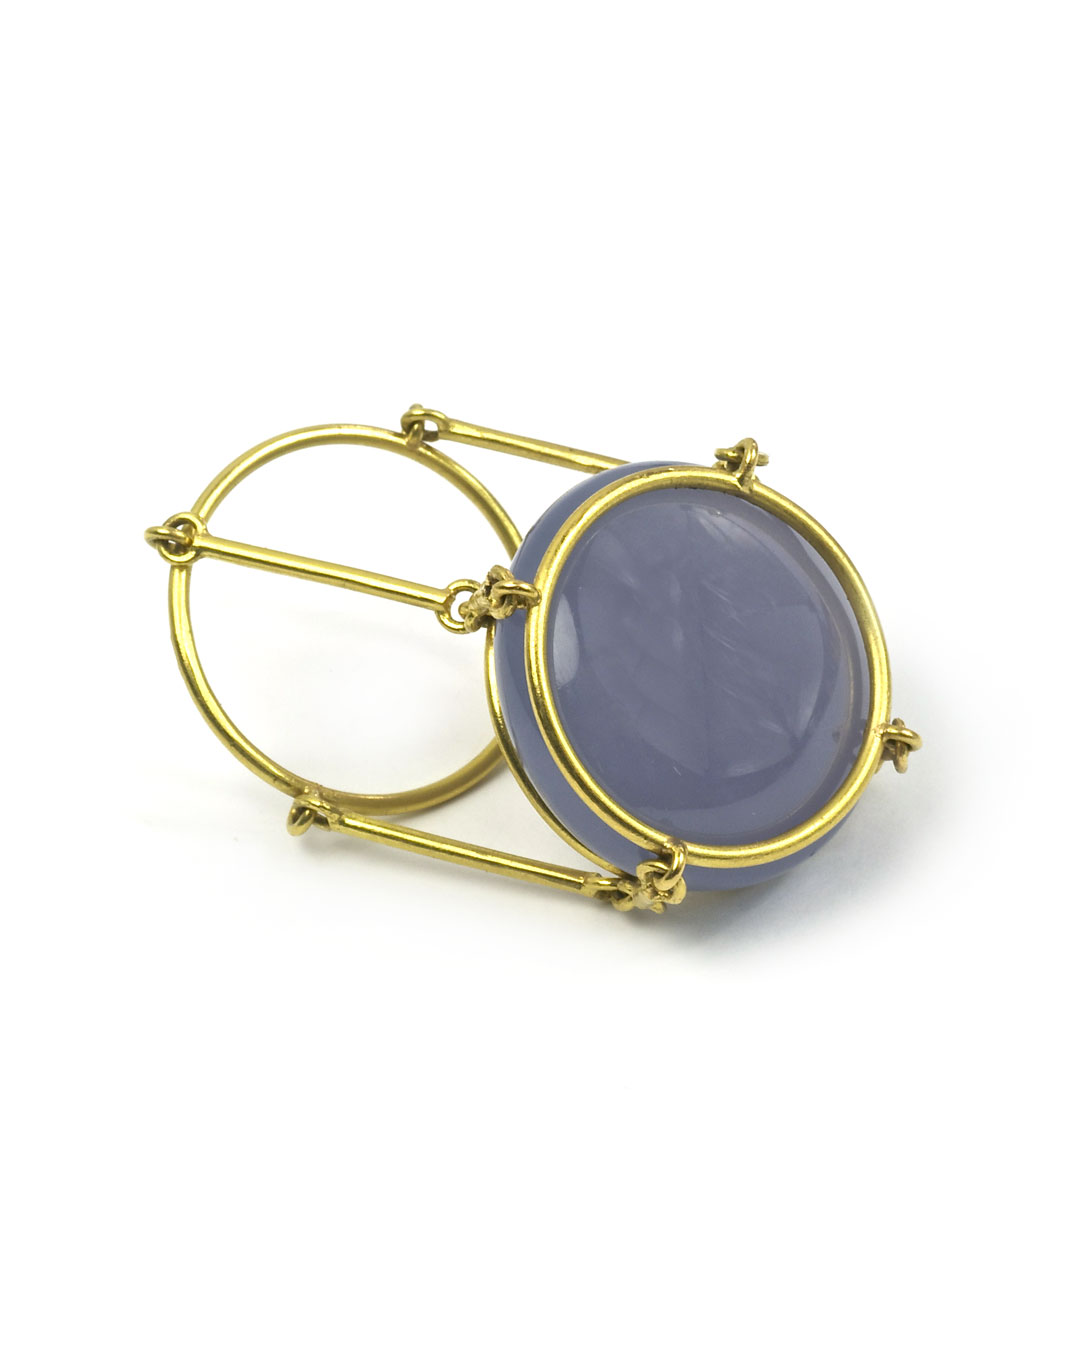 Etsuko Sonobe, untitled, 2006, ring; 20ct gold, blue chalcedony, 28 x 20 mm, €1550